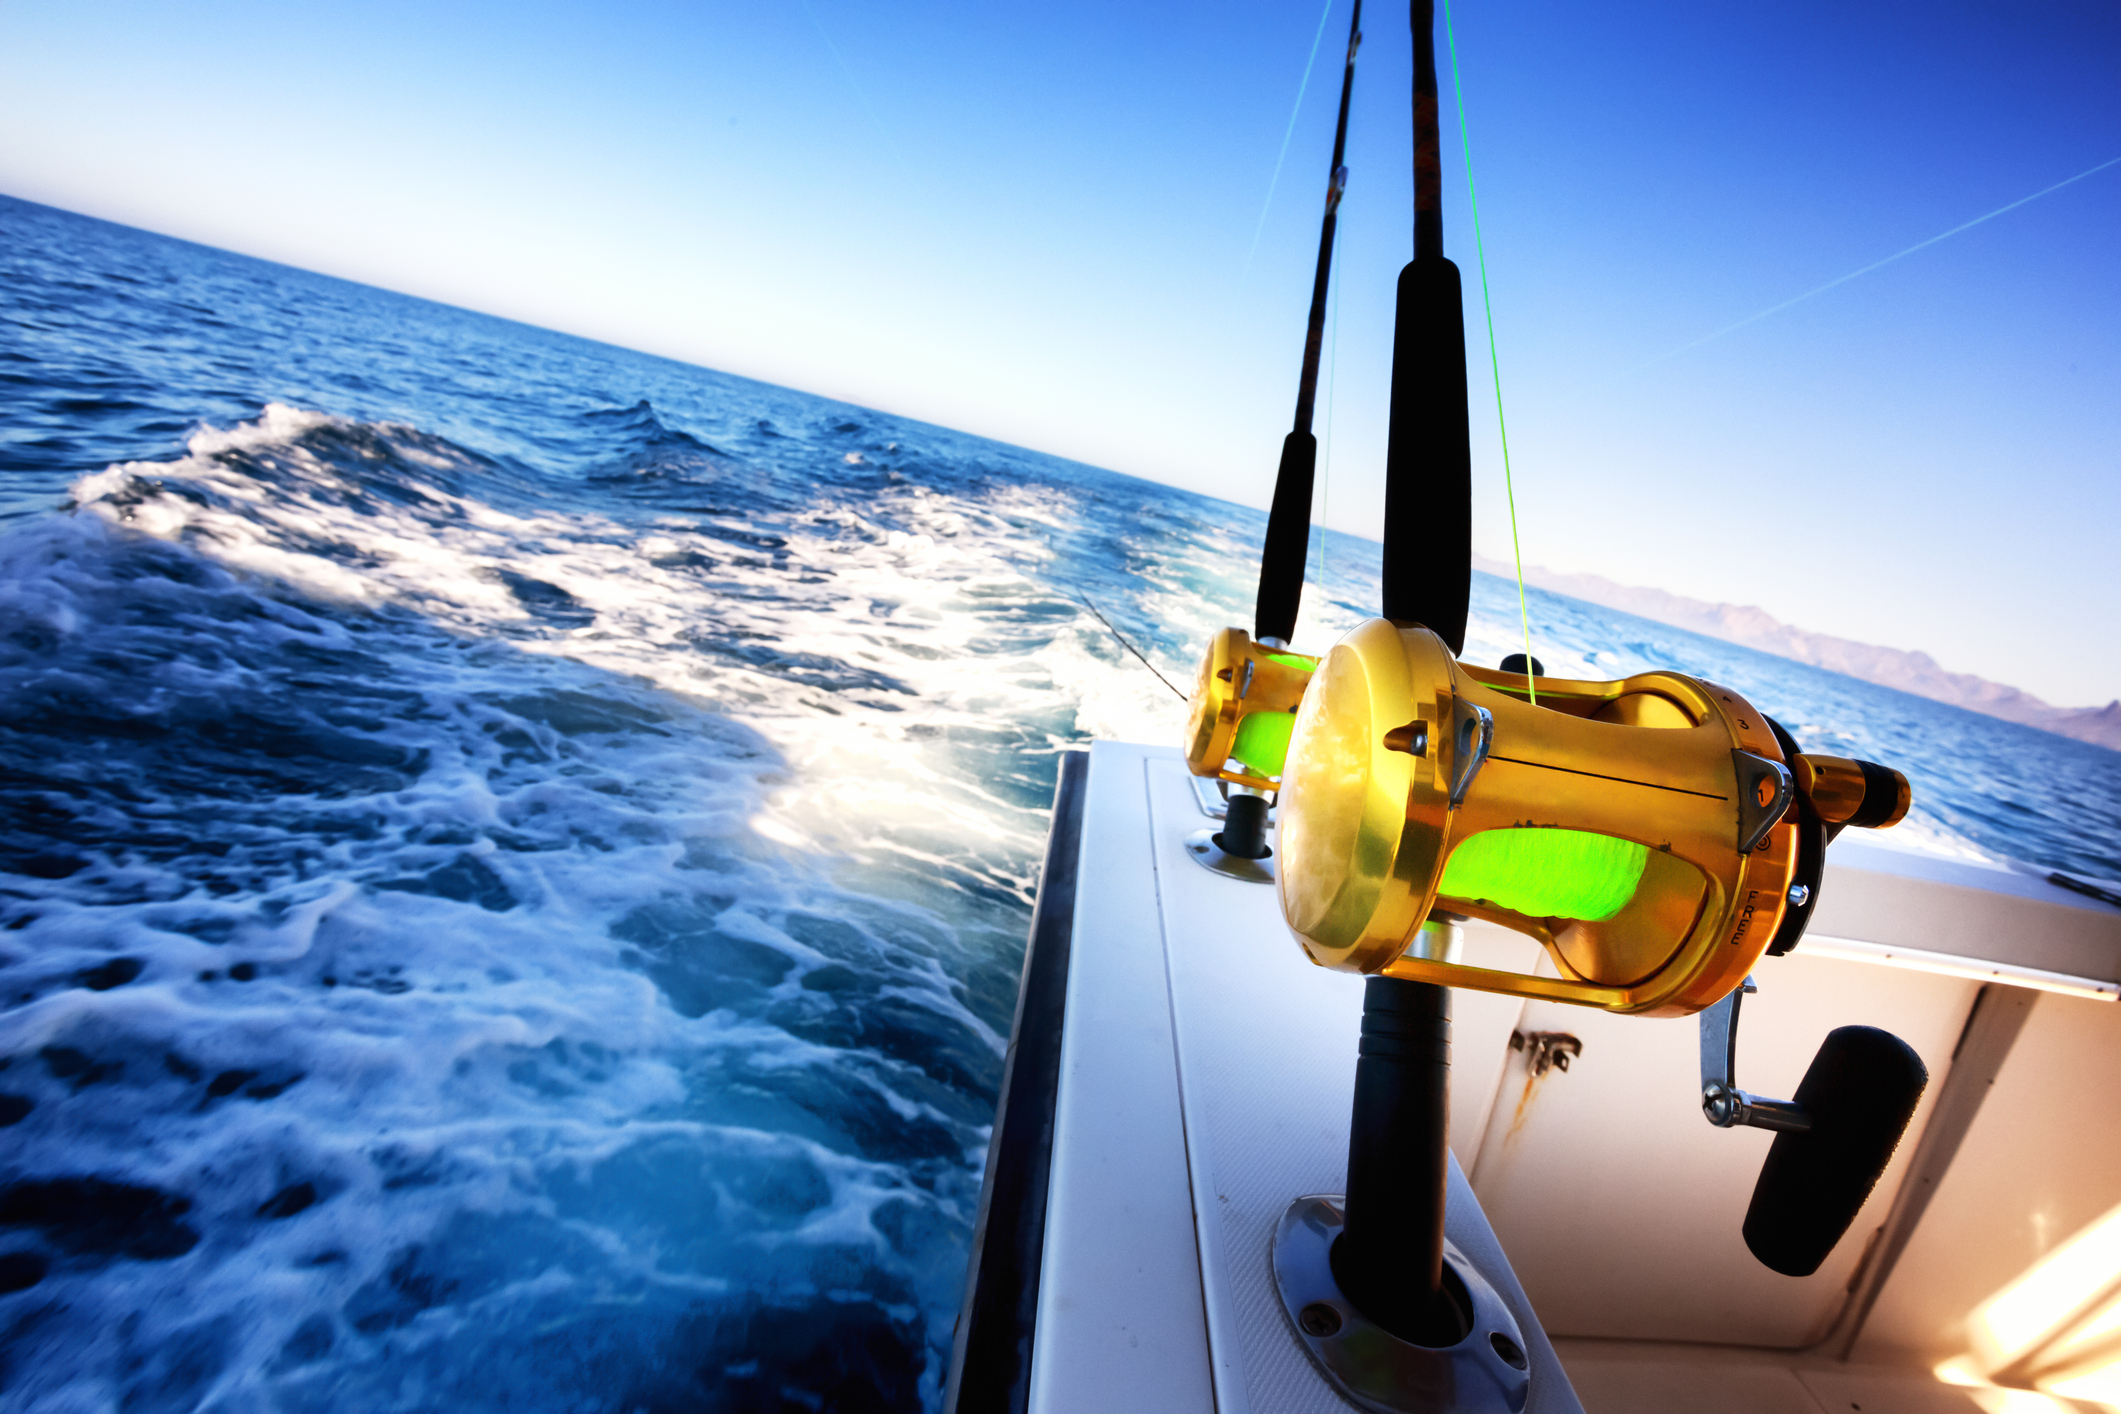 A sunny day on the ocean fishing from a boat.